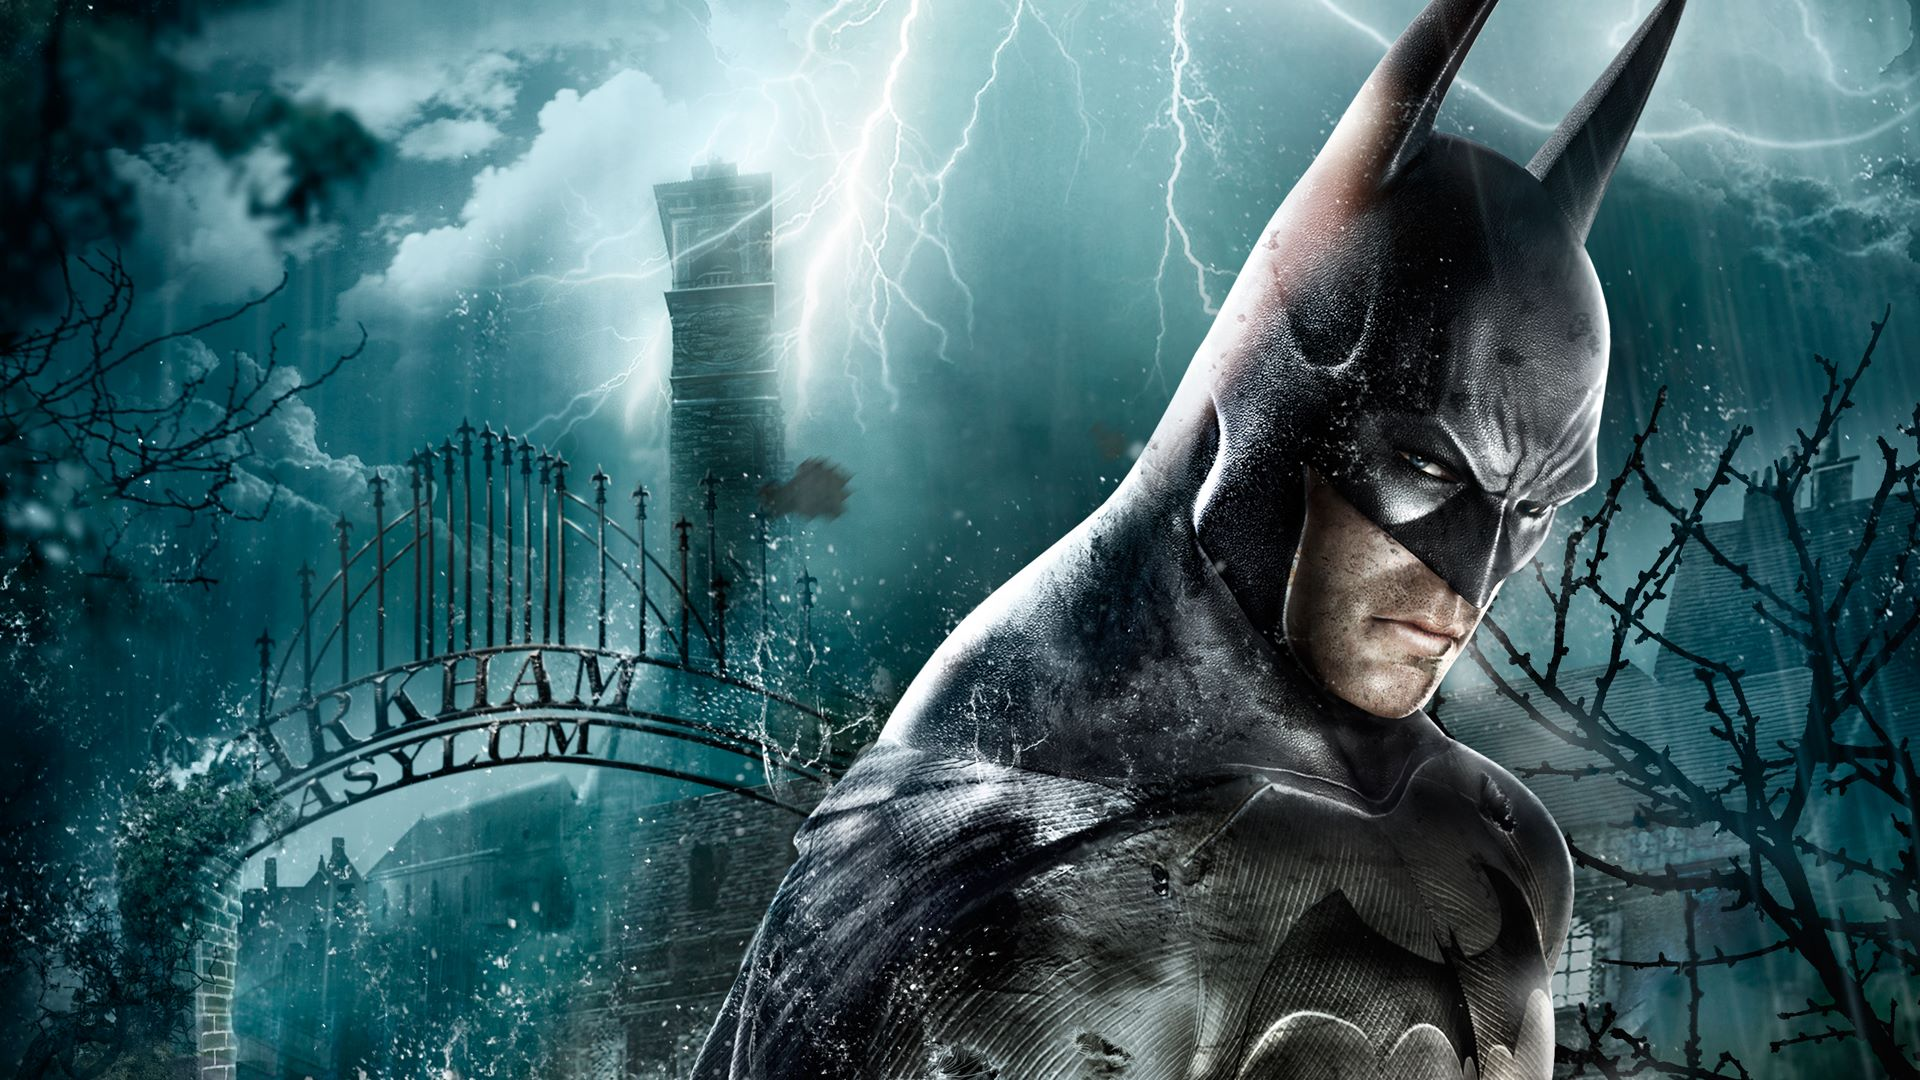 A revolution in comics-based gaming… - Rocksteady Studios' inaugural outing with the Dark Knight is an absolute game-changer in the realm of Batman gaming, wider comics-based gaming, and the action-adventure game itself.